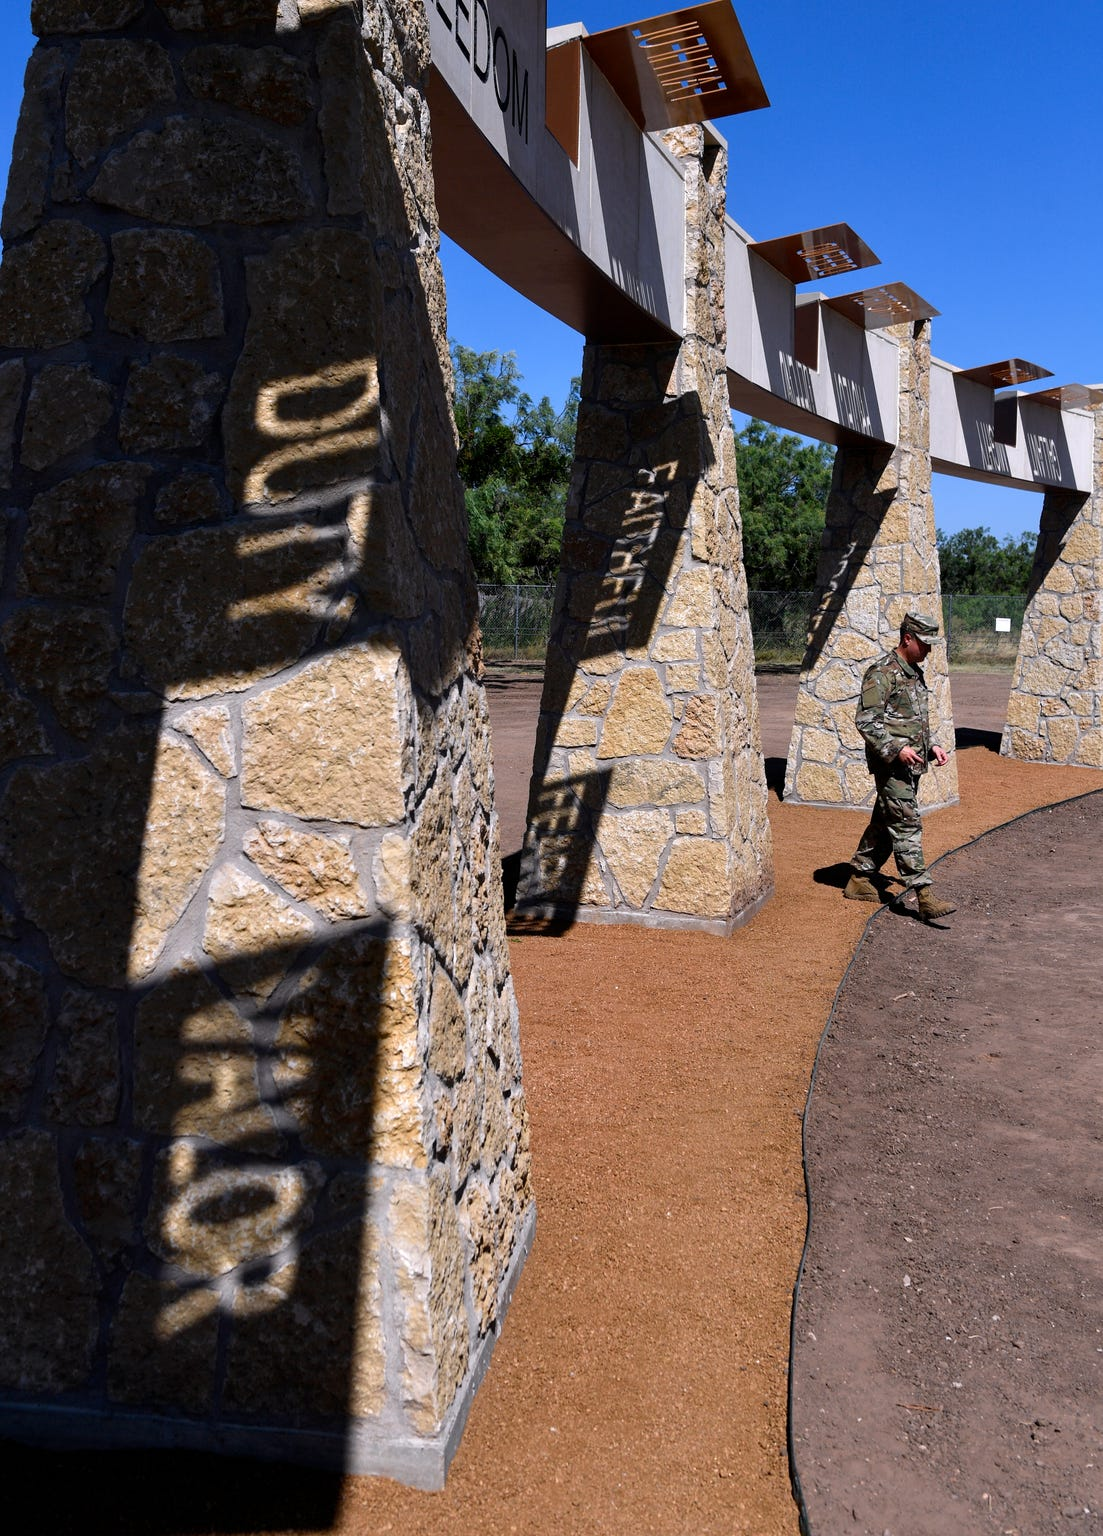 Chief Msgt. Trevor Smith of the 314th Airlift Wing in Little Rock, Ark., walks beneath the arches after the Dyess Memorial Park extension dedication July 19. A feature of the monument is the sunlight that shines through overhead metal stencils, projecting words onto the ground and rock columns below.